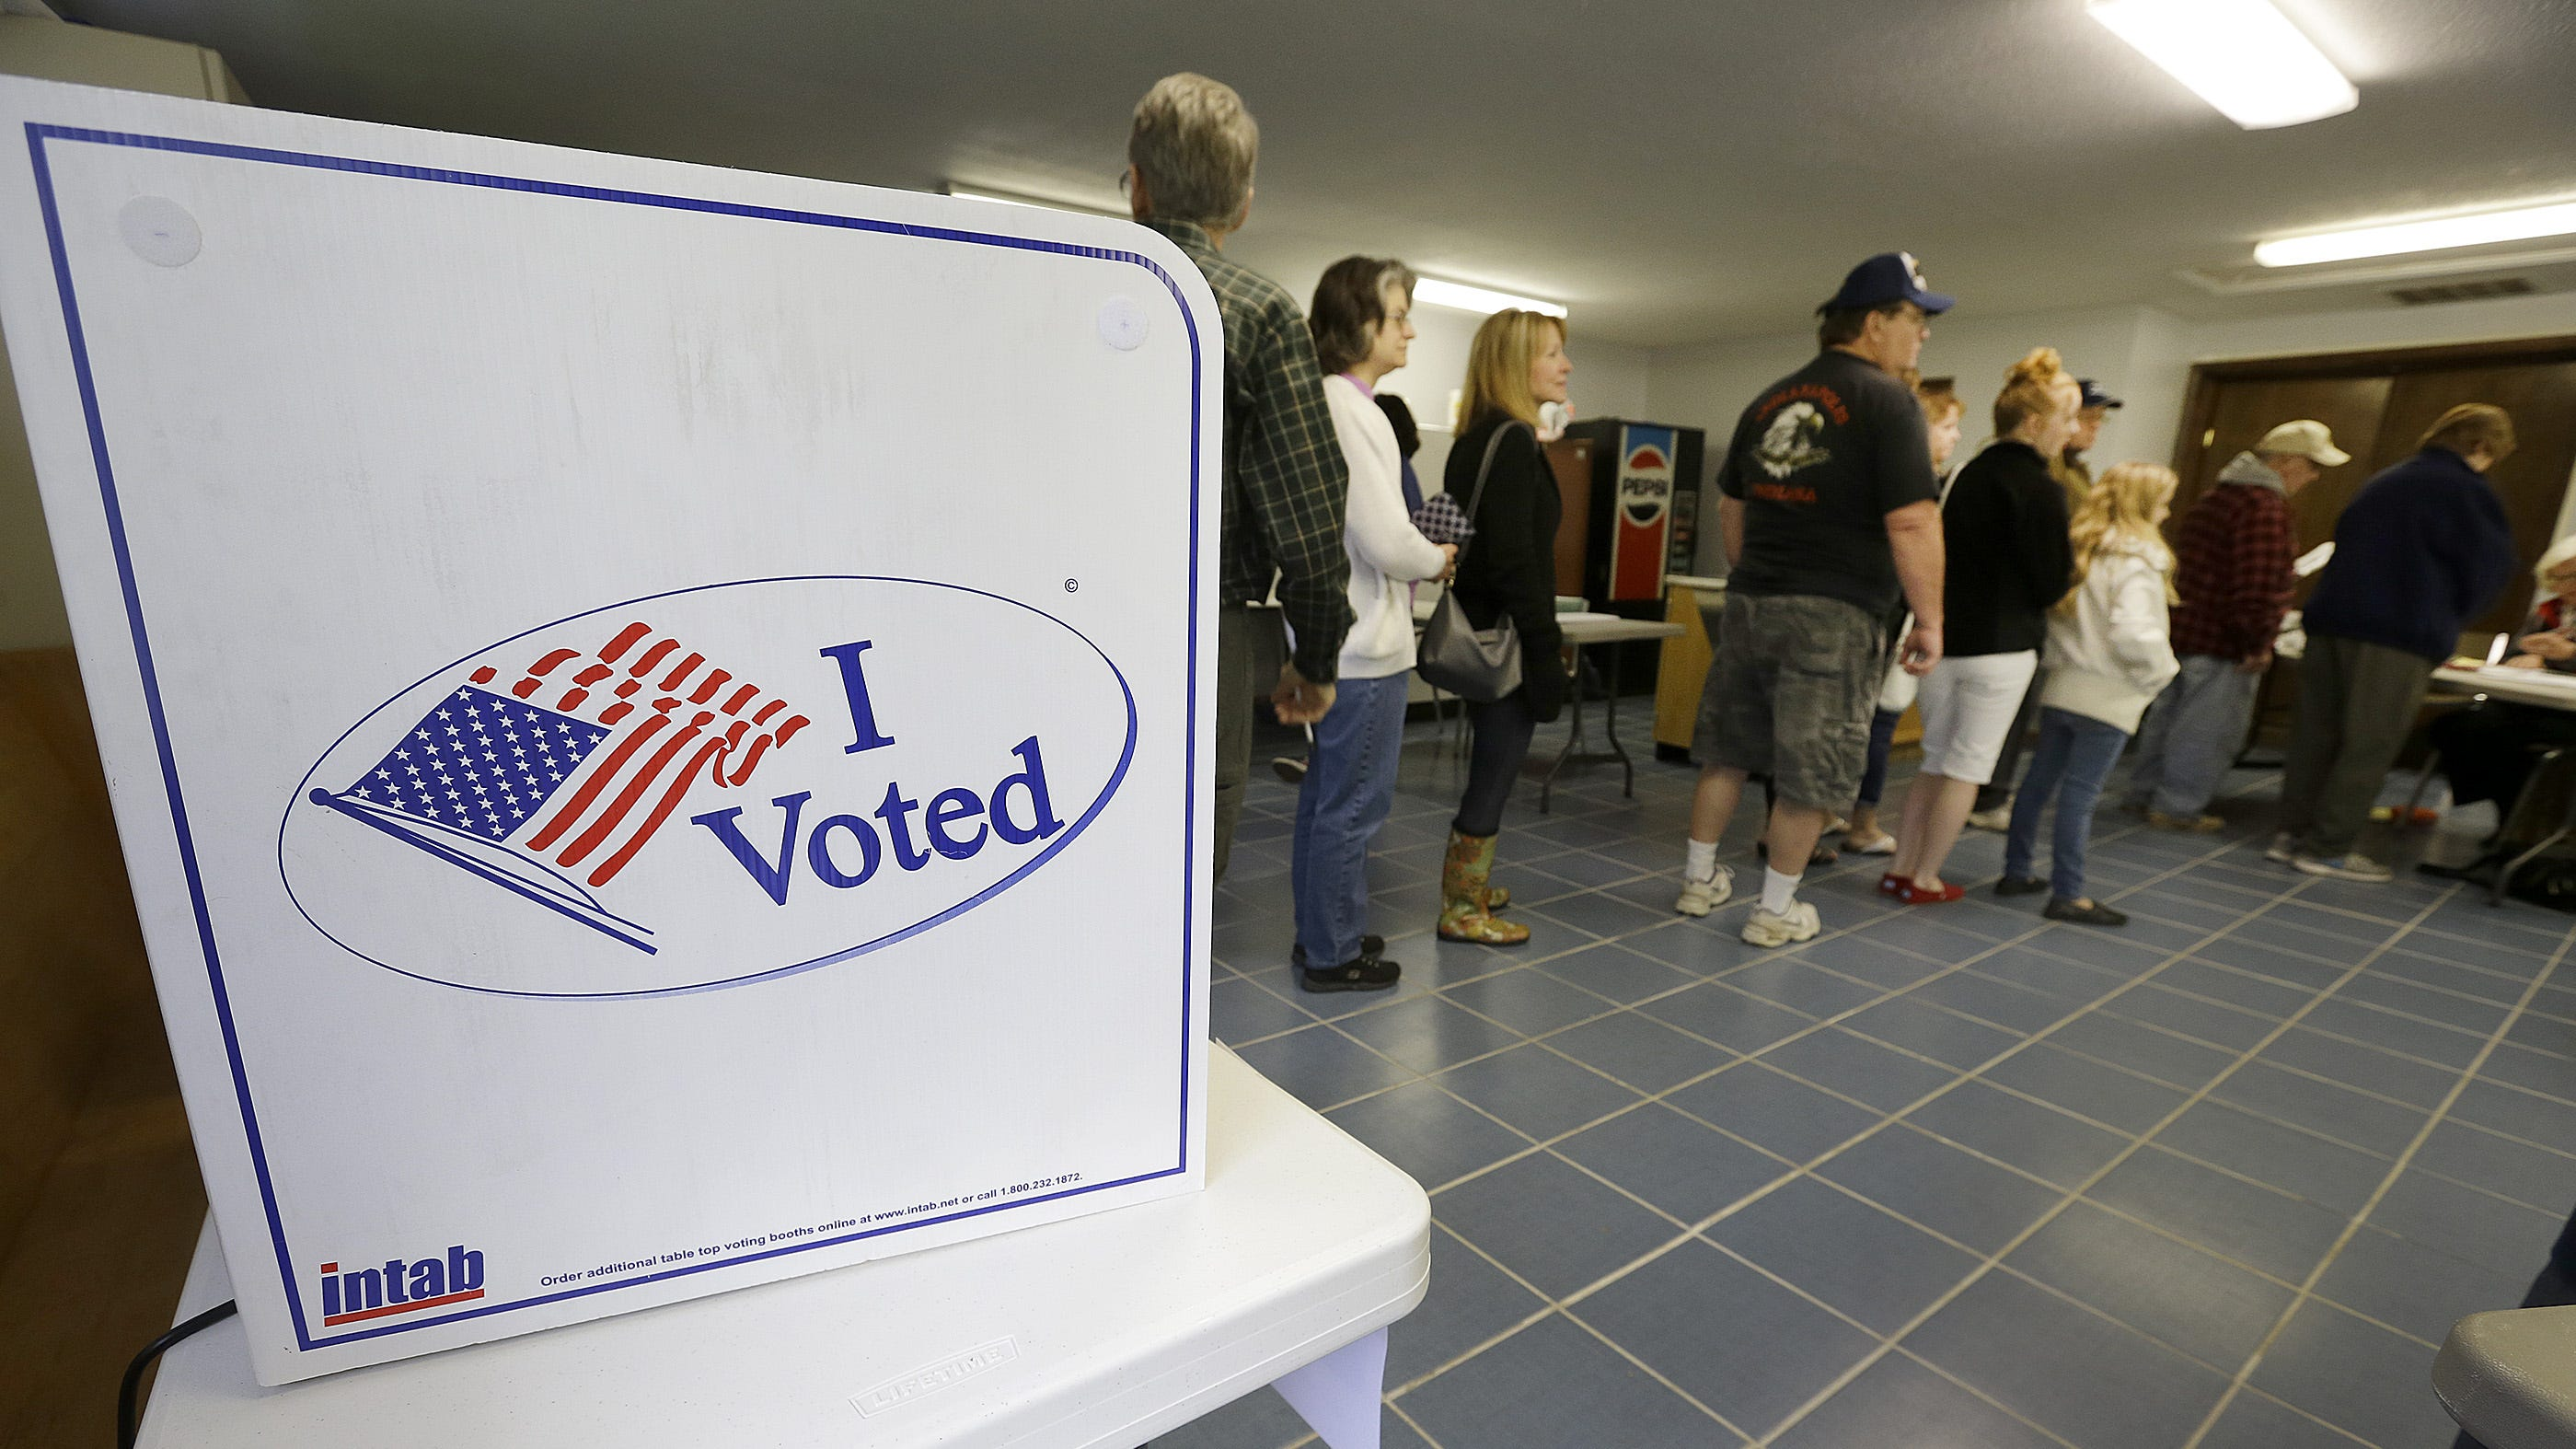 Court says only Indiana election officials can request polling extensions